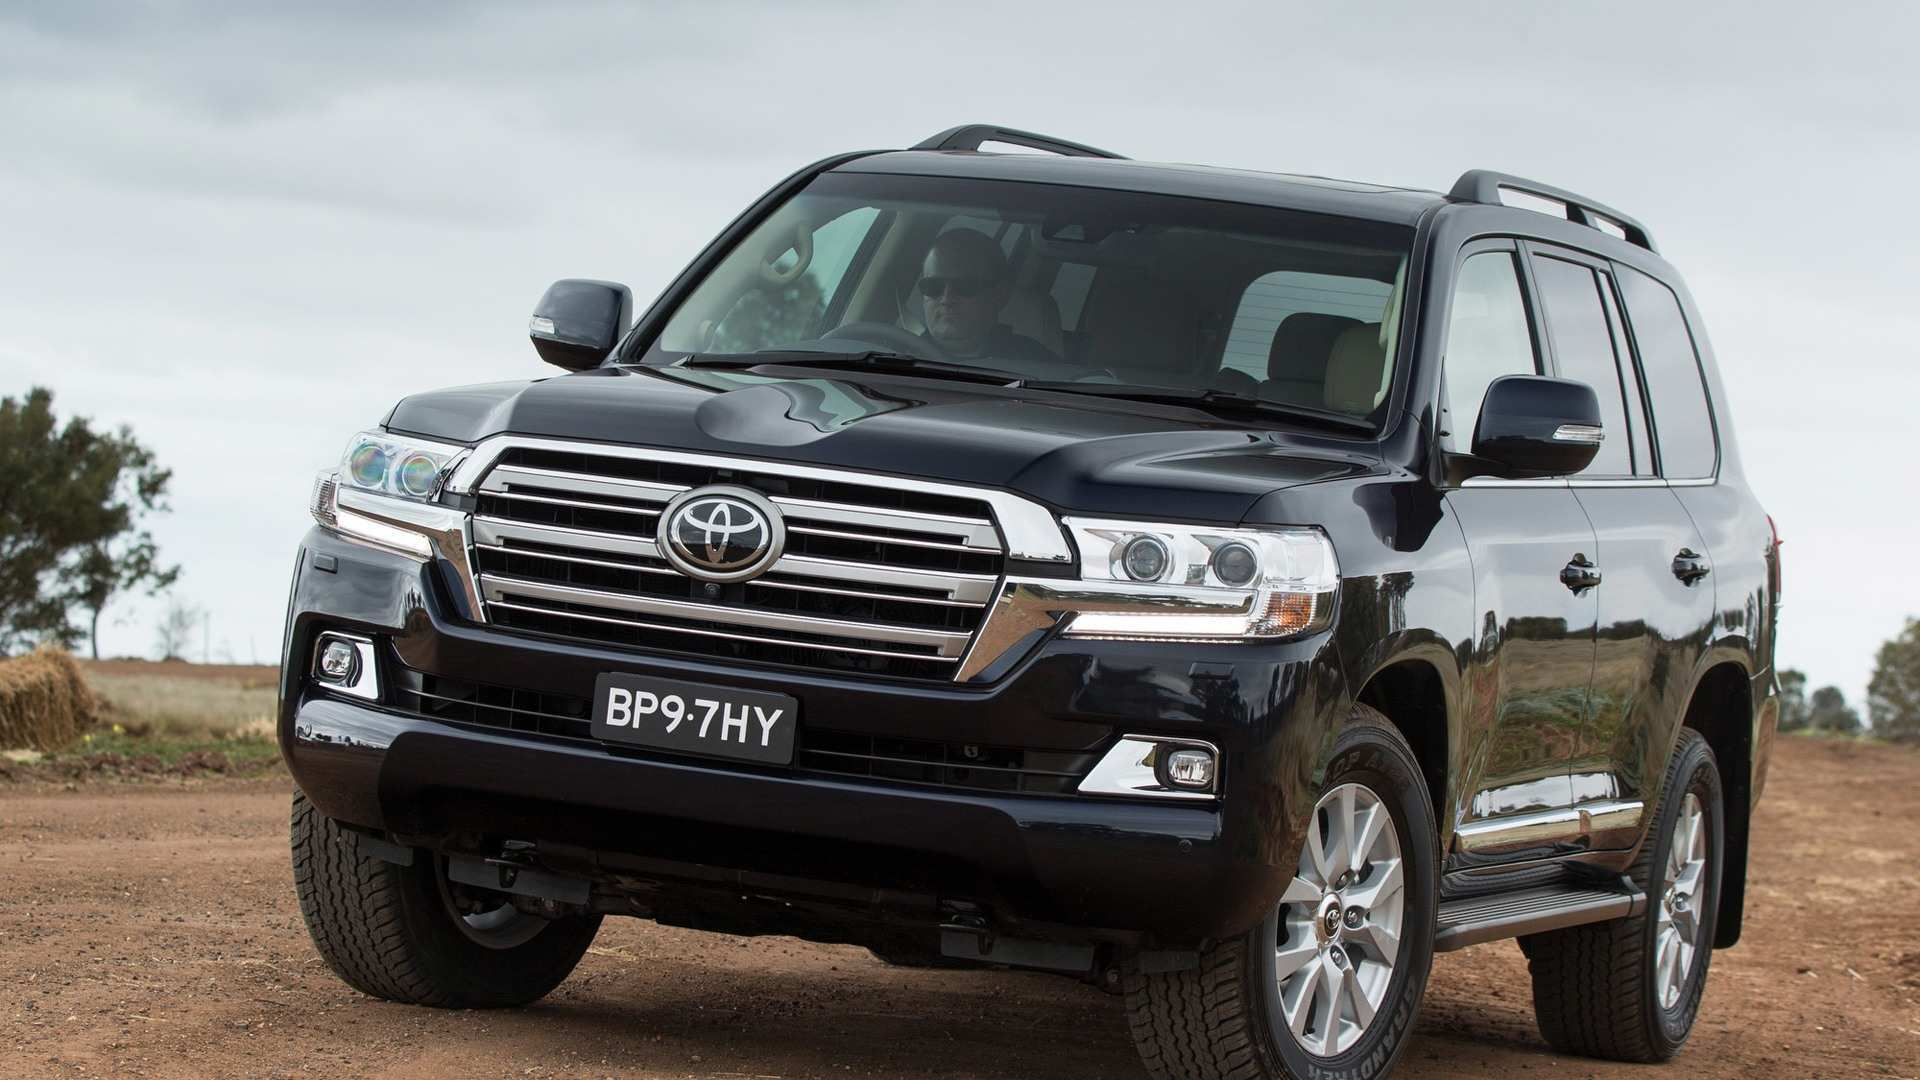 44 Gallery of 2019 Toyota Land Cruiser Spy Shots History for 2019 Toyota Land Cruiser Spy Shots